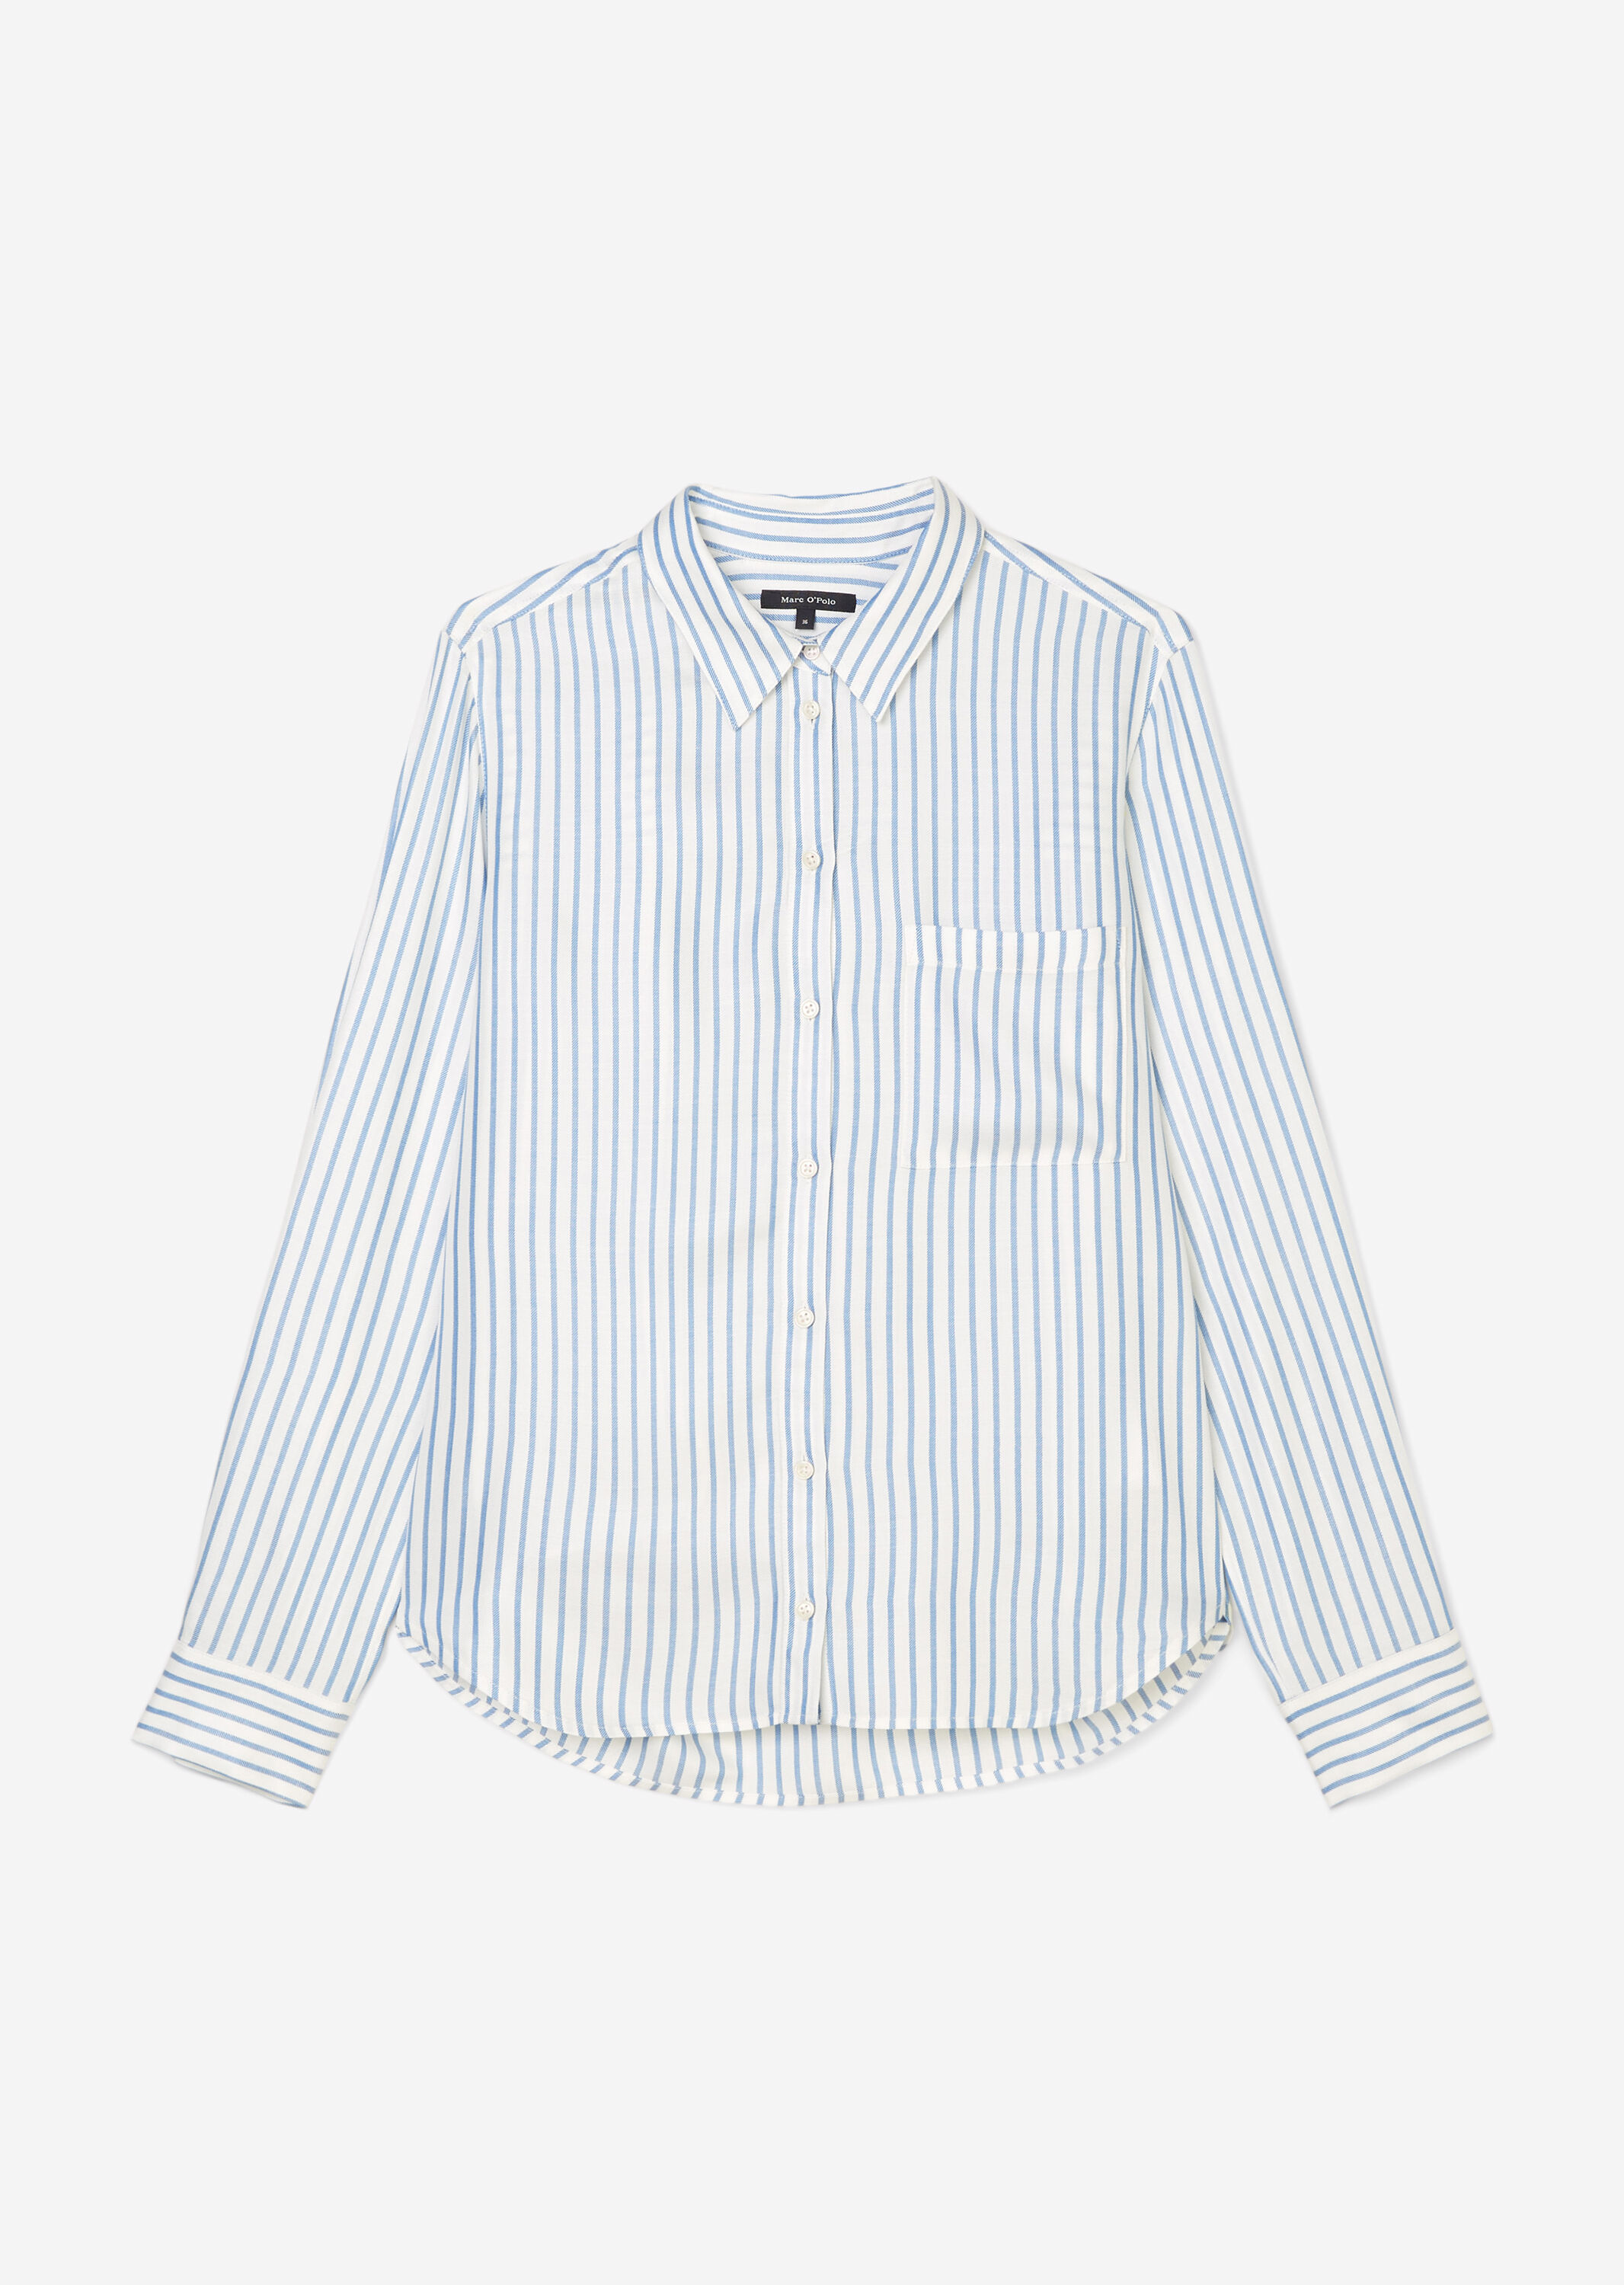 Bluse MARC O'POLO mit Muster